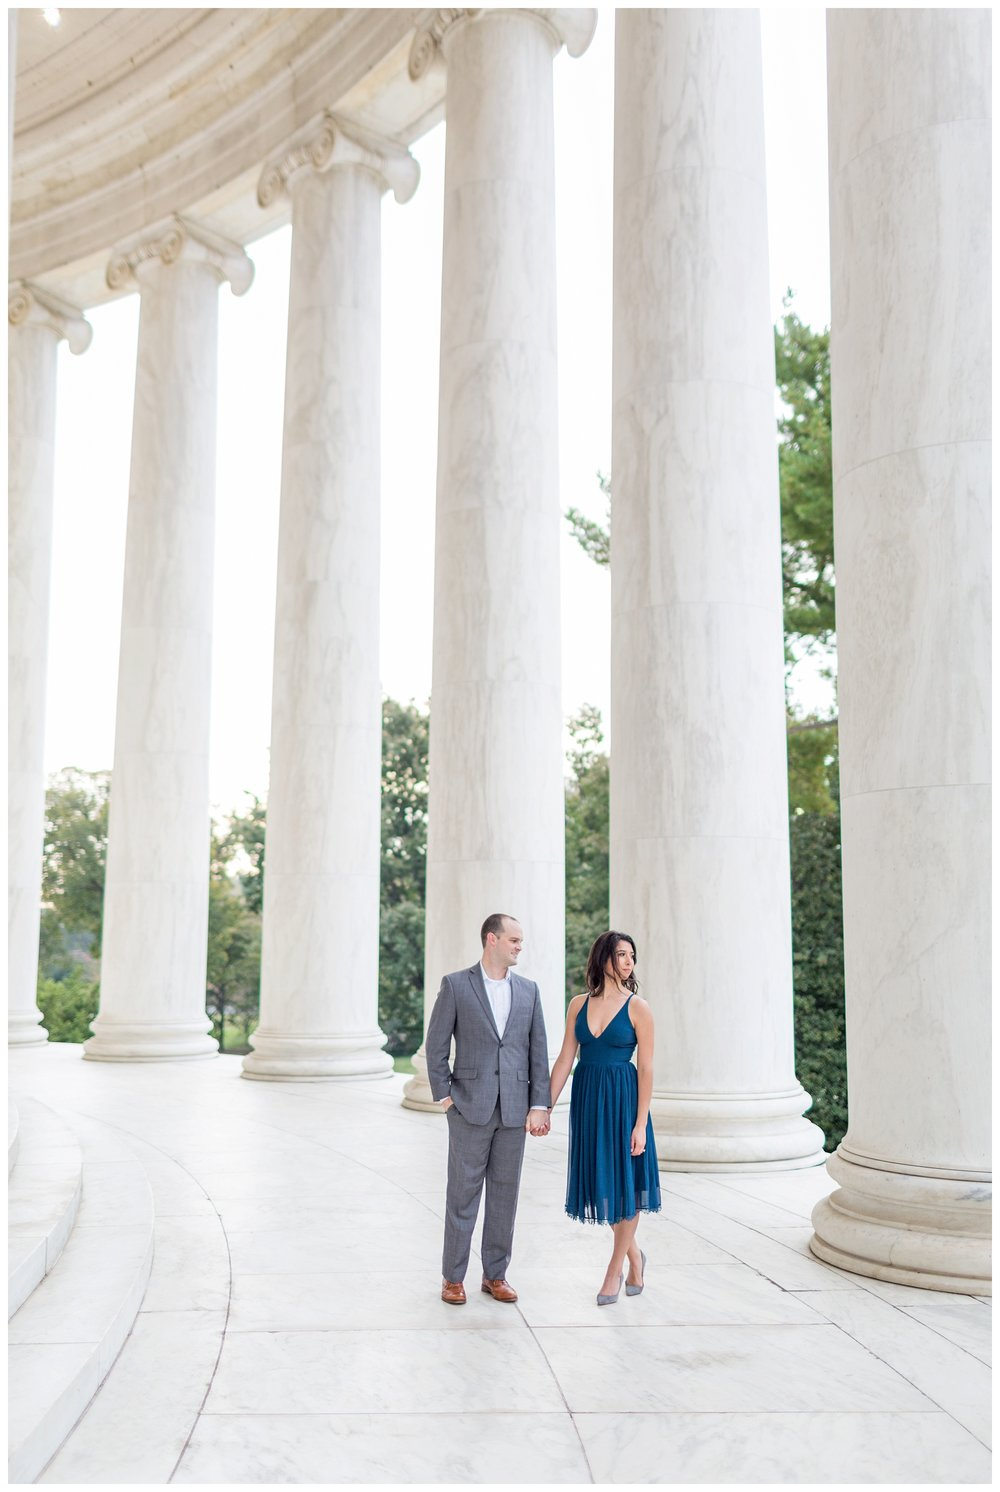 Washington DC Engagement Photos Kir Tuben_0011.jpg